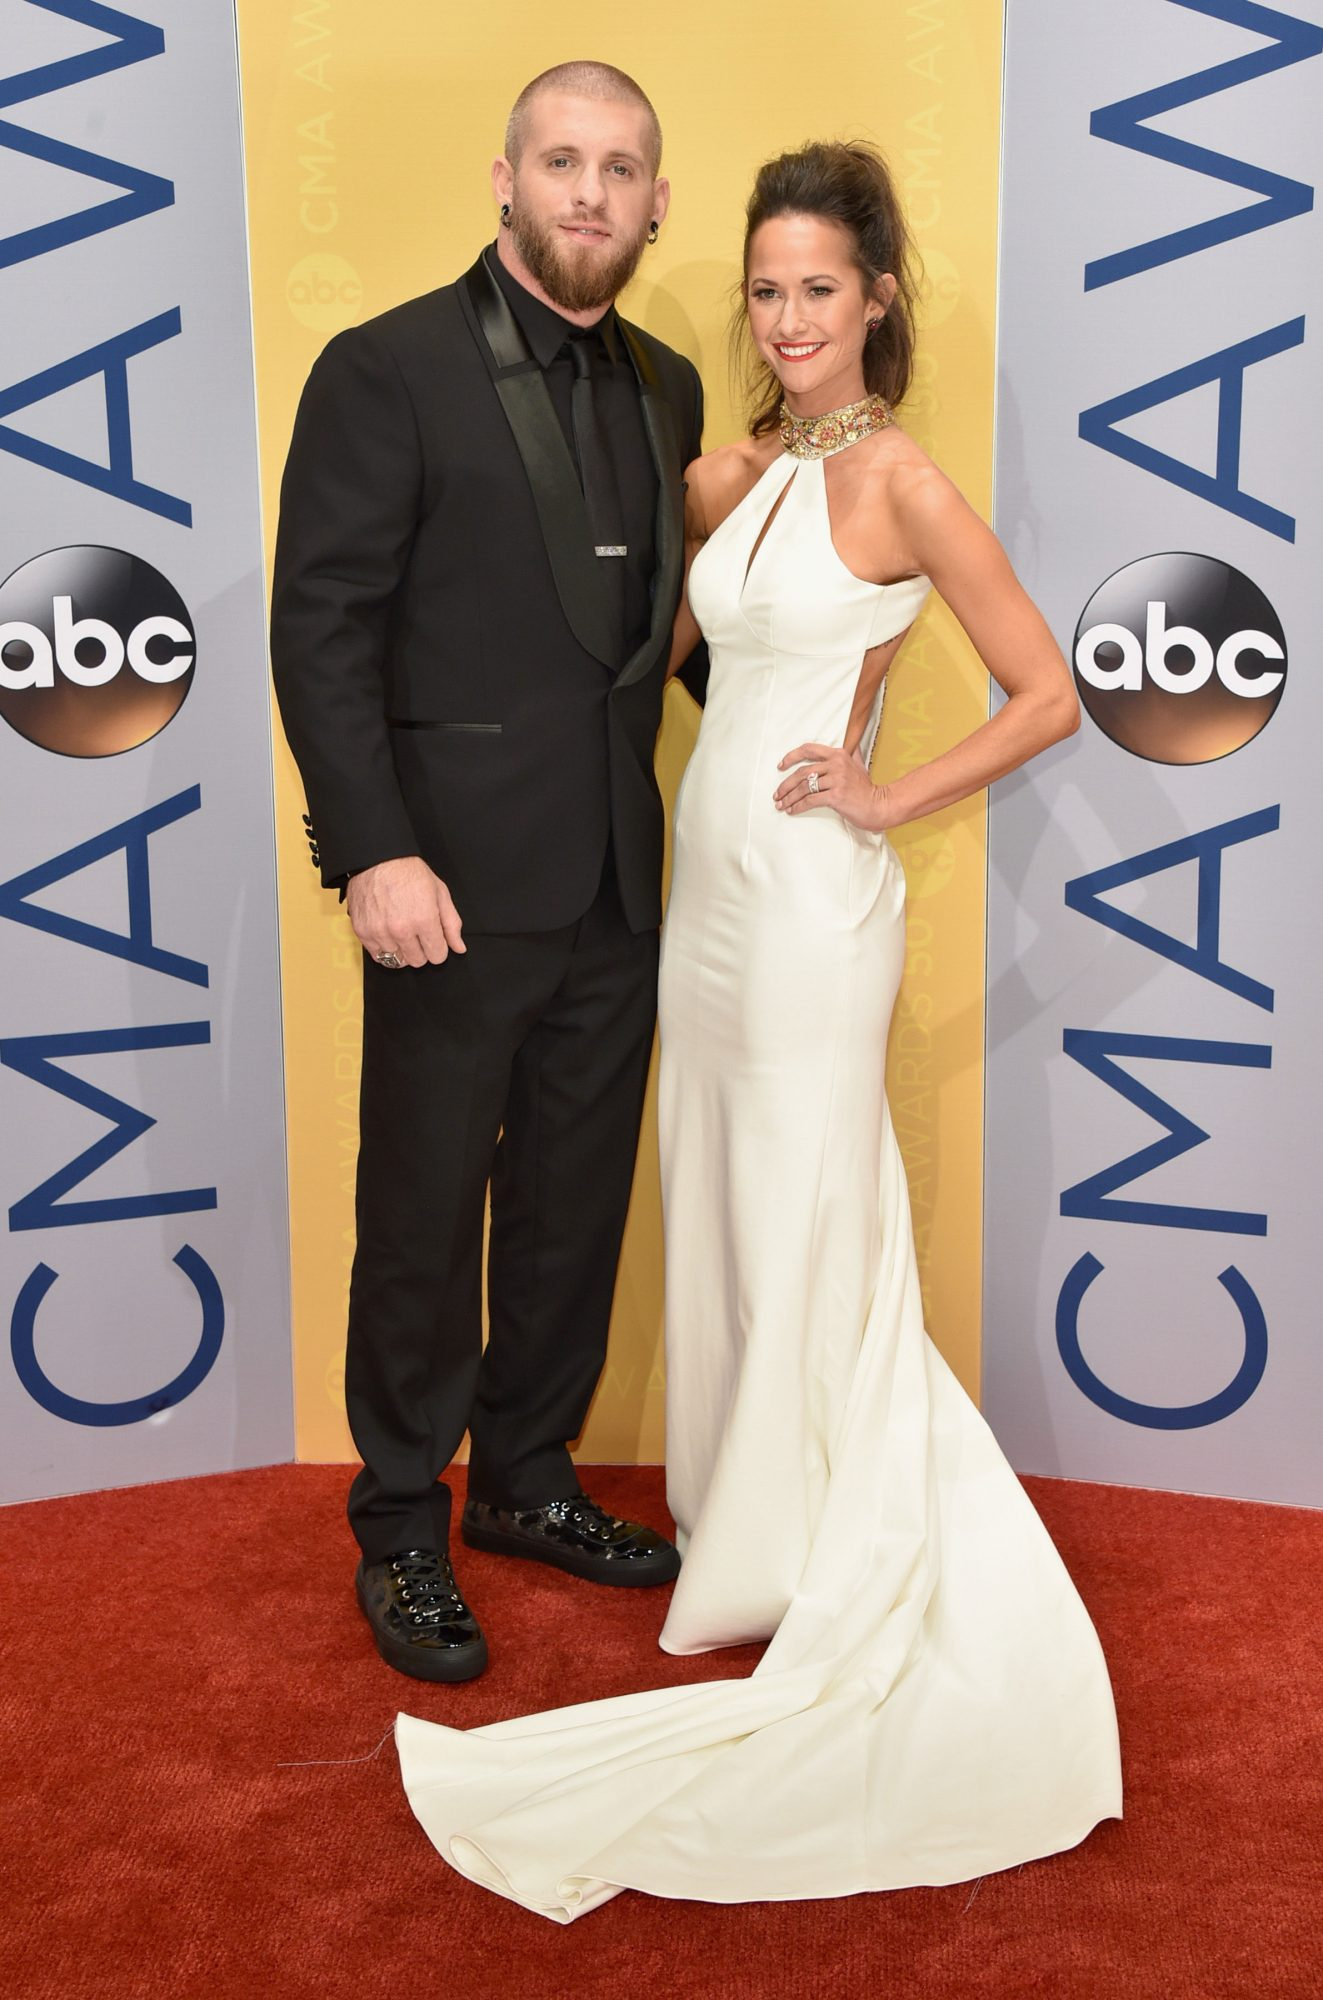 Brantley Gilbert And Amber Cochran Wedding Pictures